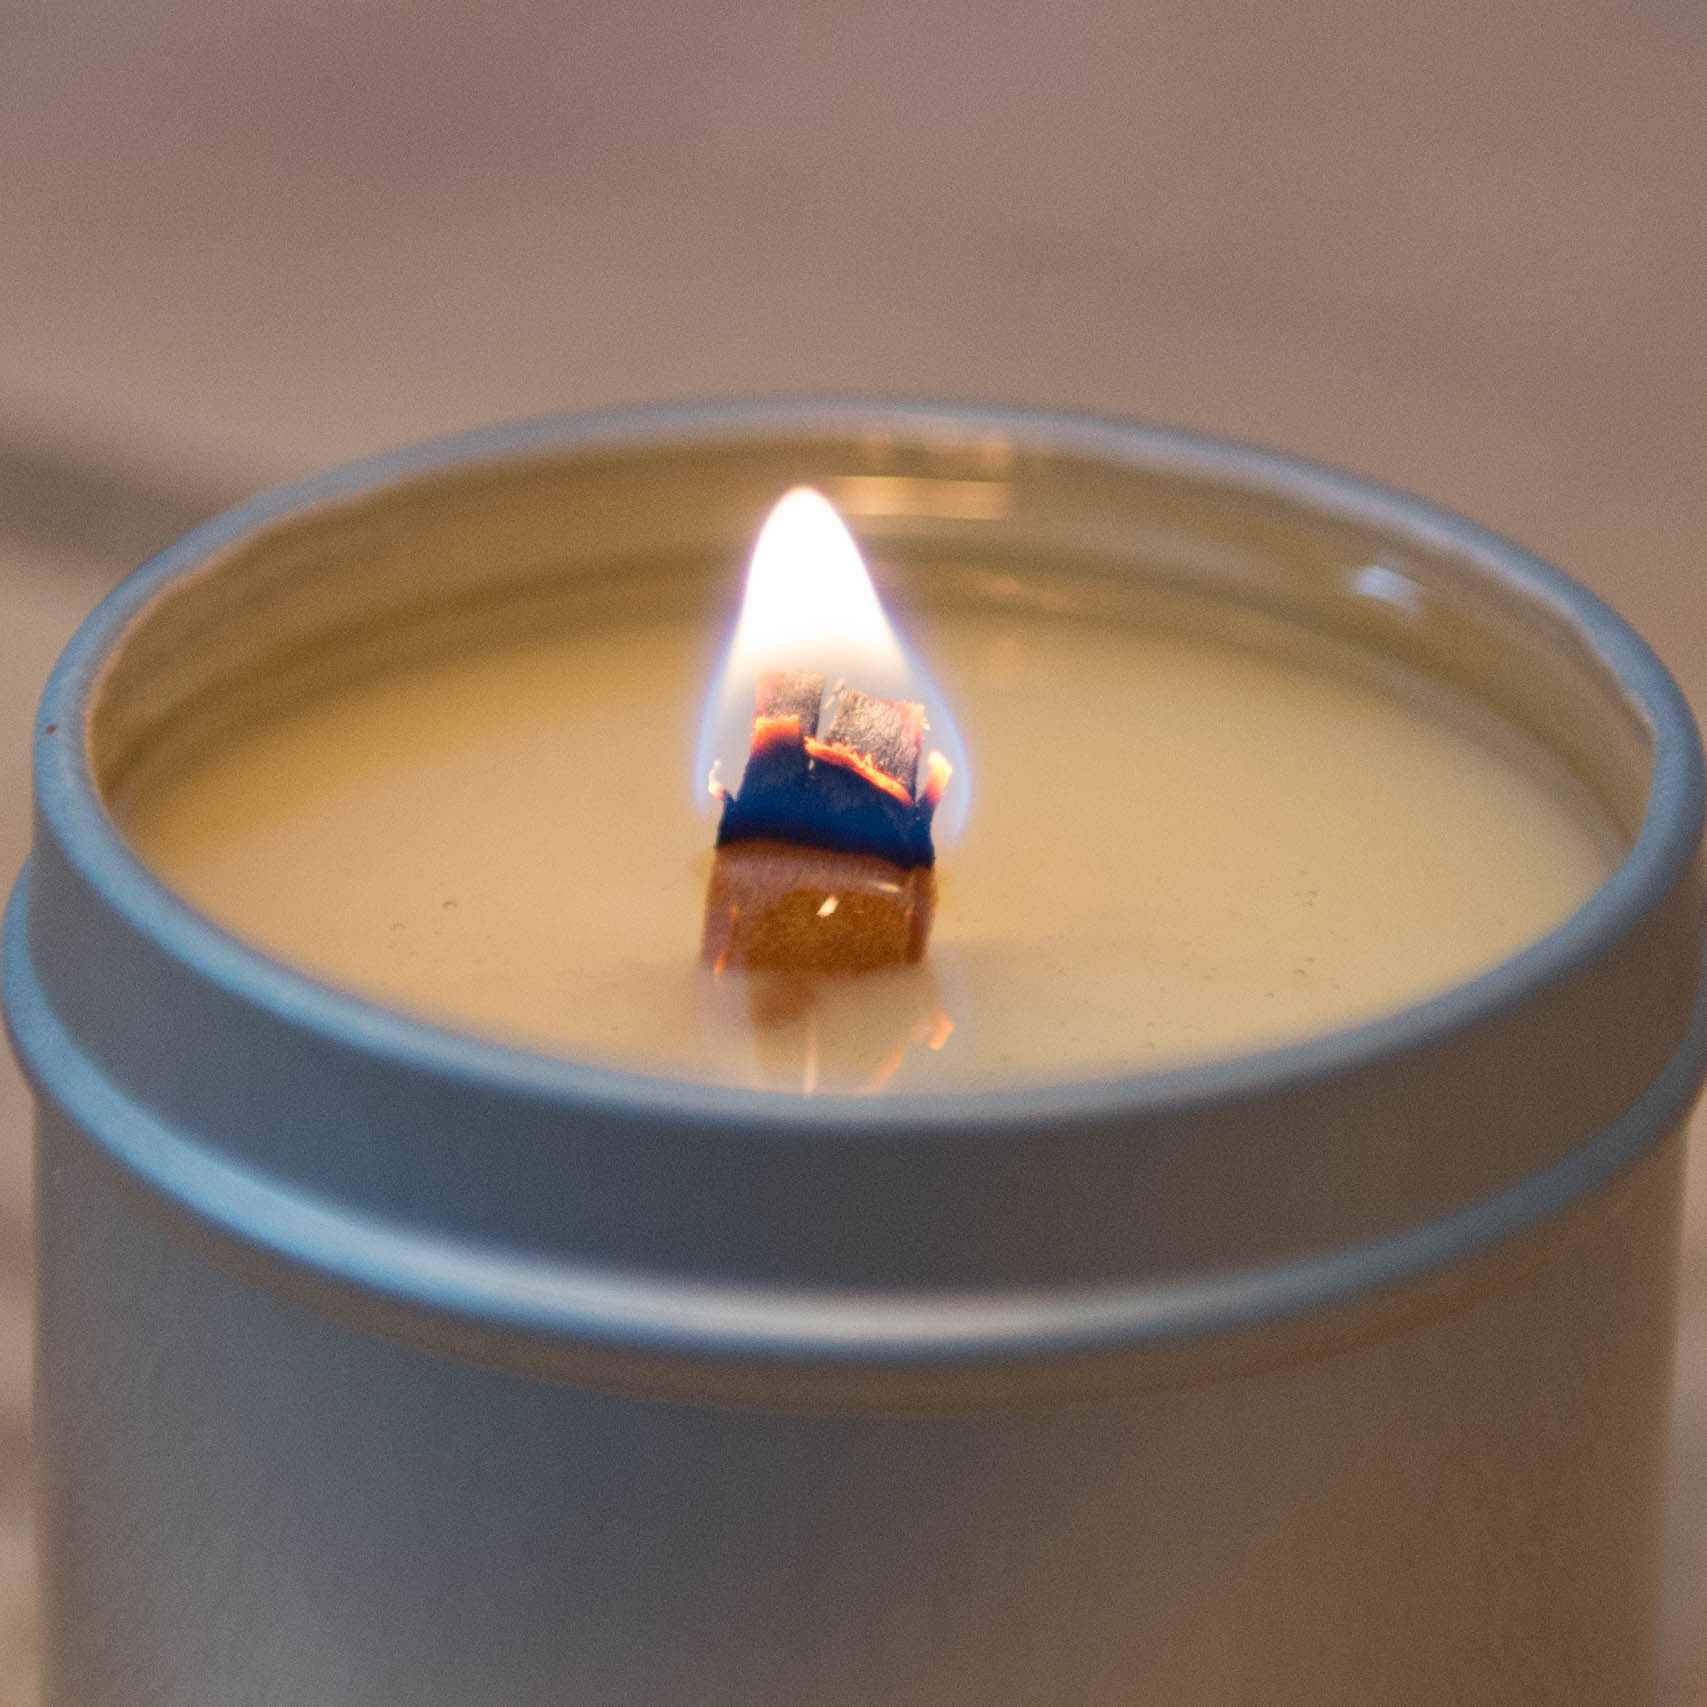 865 Candle Company Burning 2 oz. Clear Glass Jar Candle